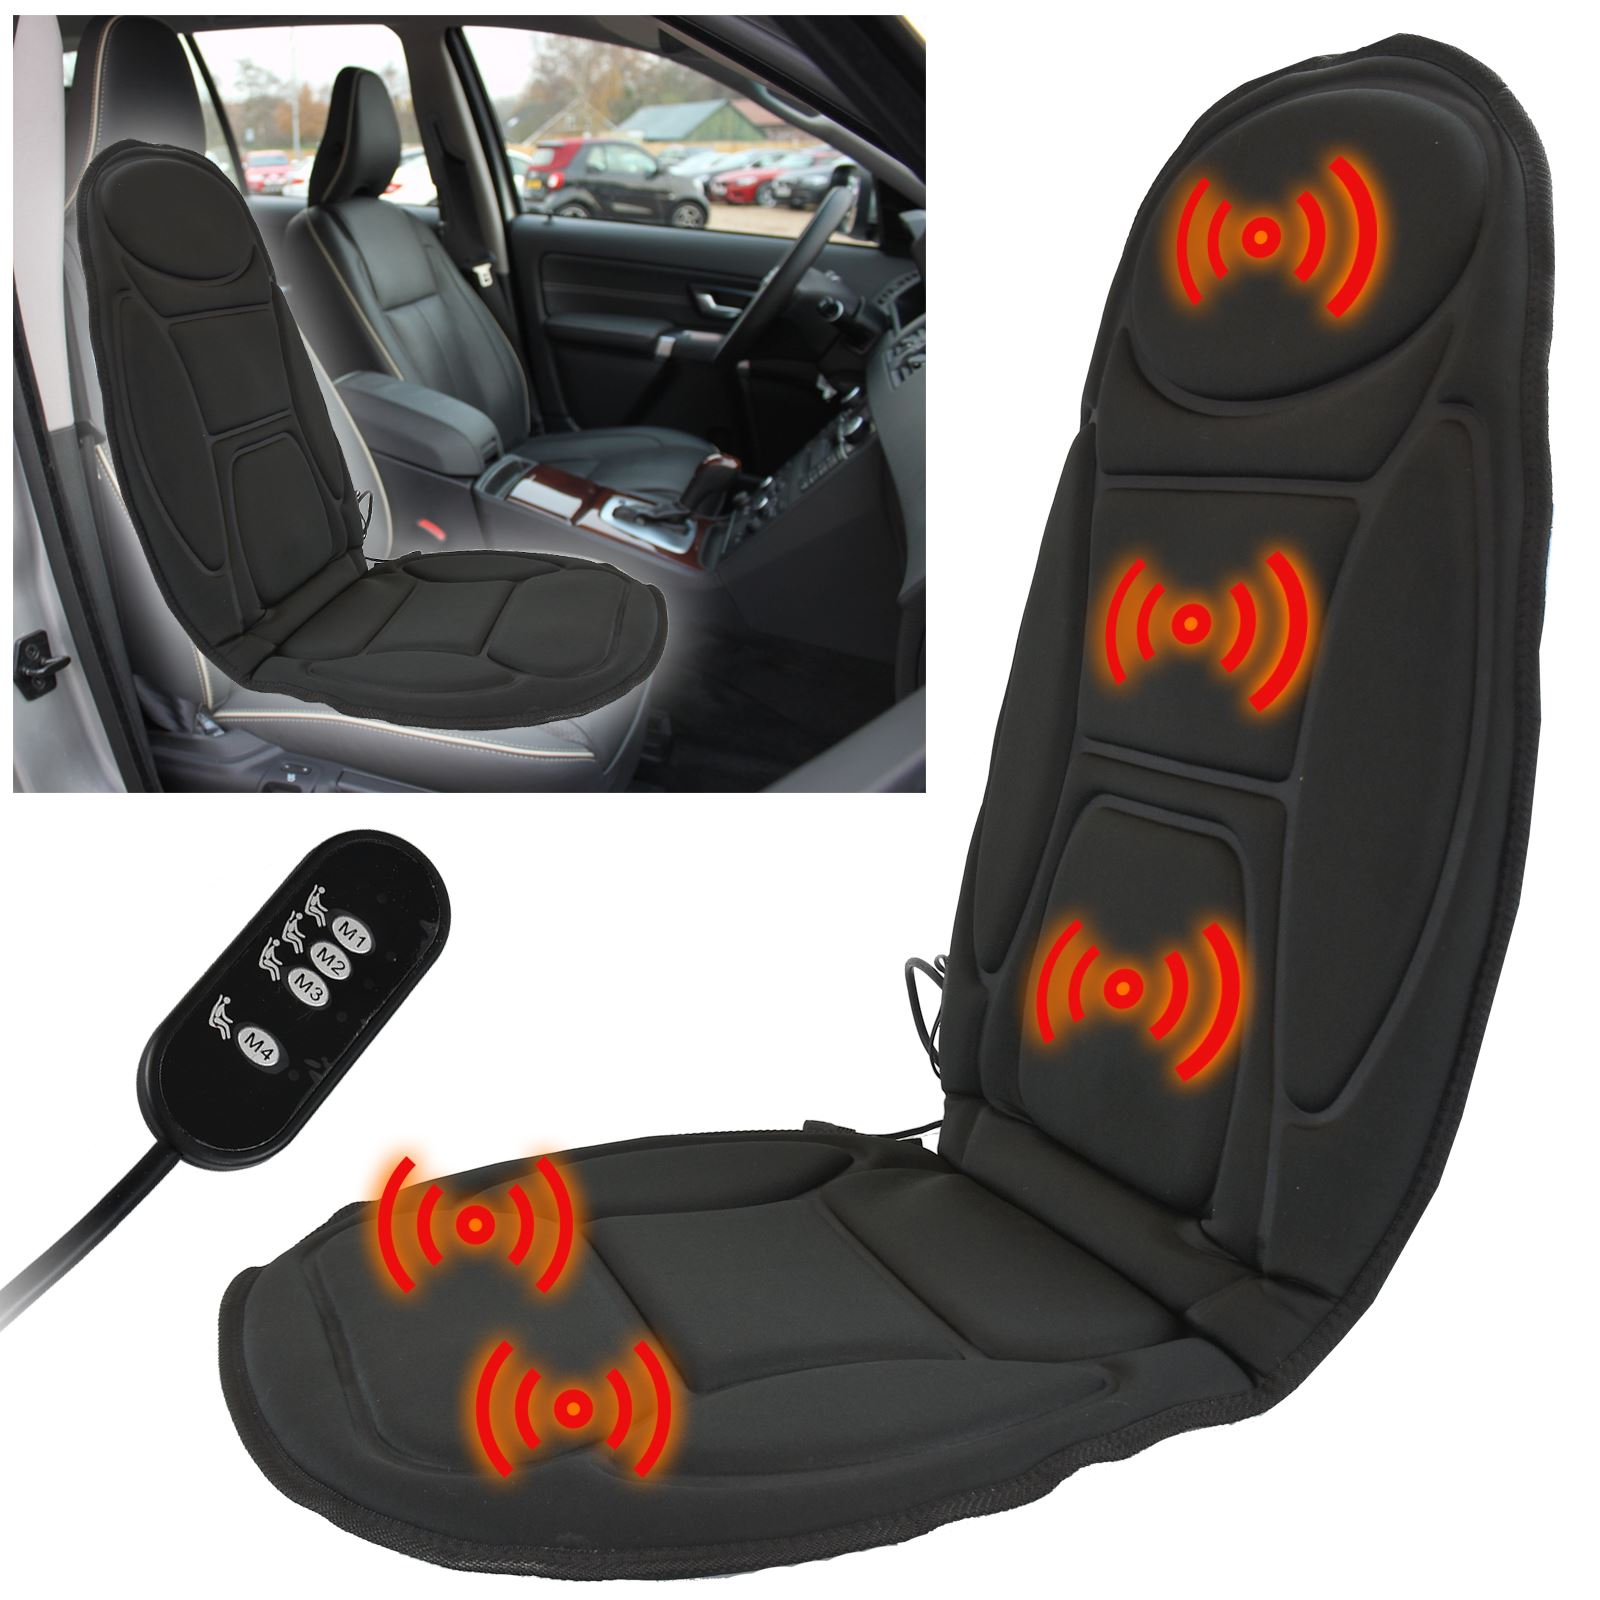 massage car seat cover chair back massager vibrate cushion van home stress relax. Black Bedroom Furniture Sets. Home Design Ideas